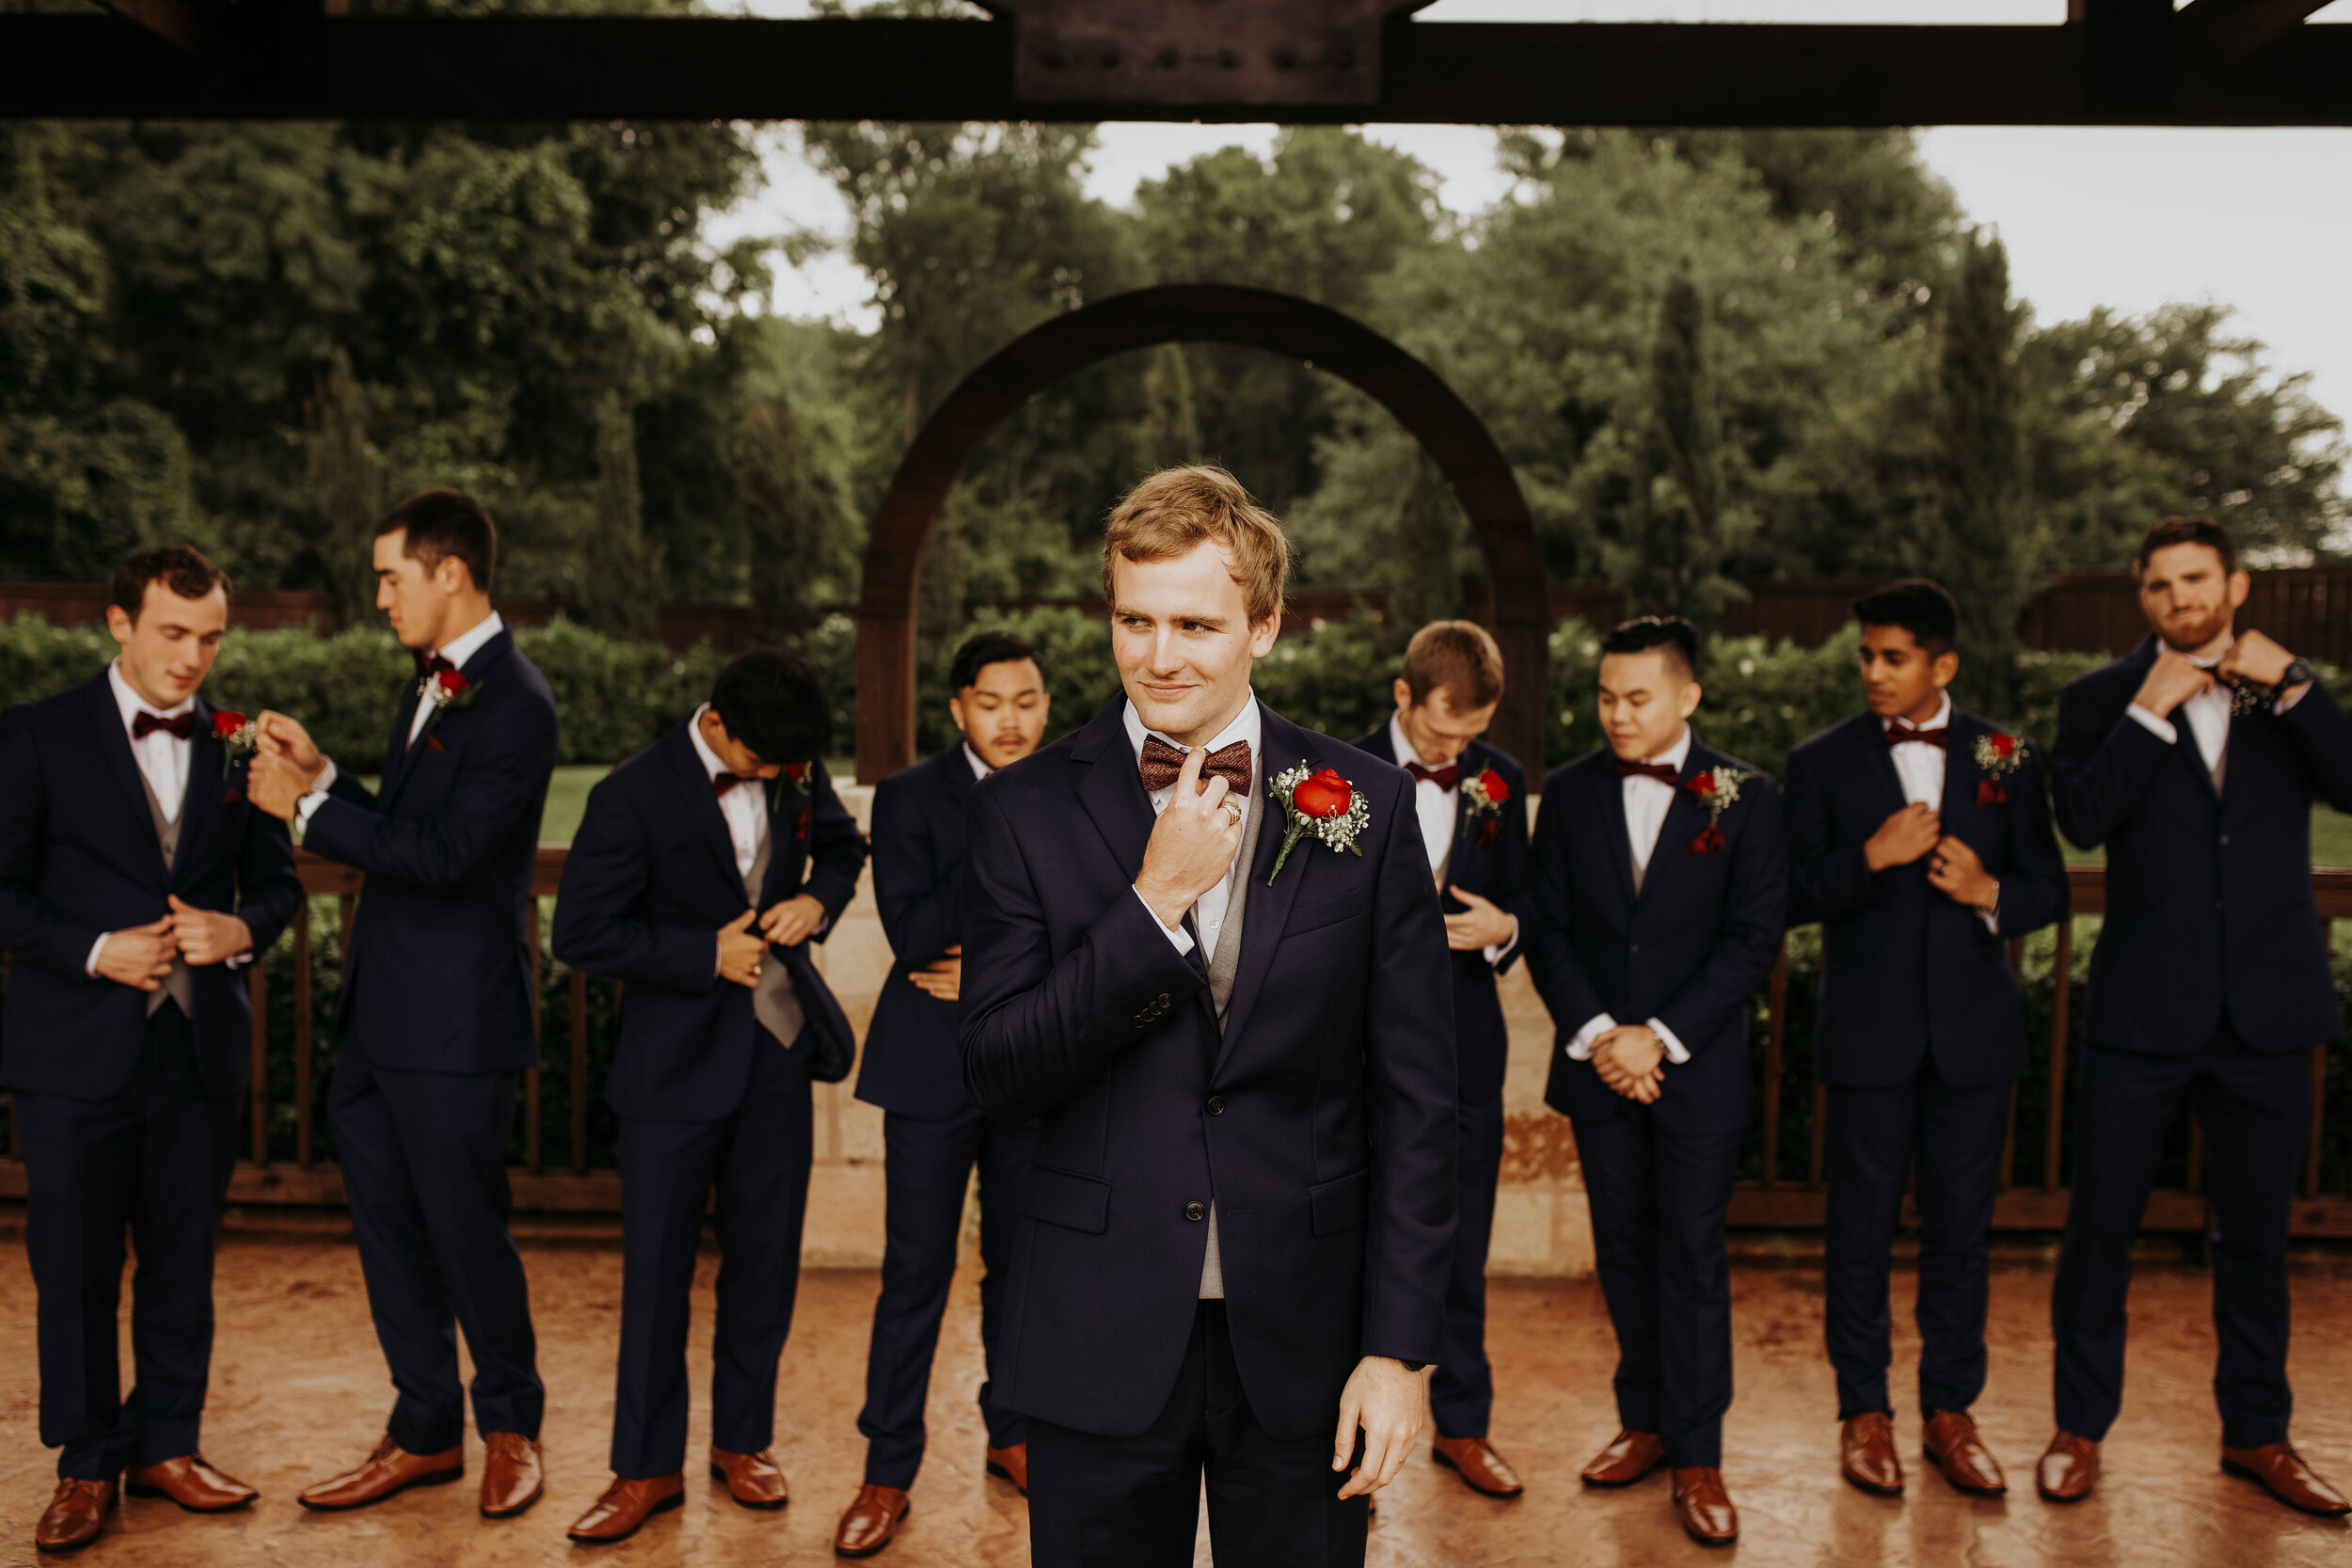 Groom and Groomsmen Picture Ideas || The Springs in Katy, TX || Houston Wedding Planner || Epoch Co+